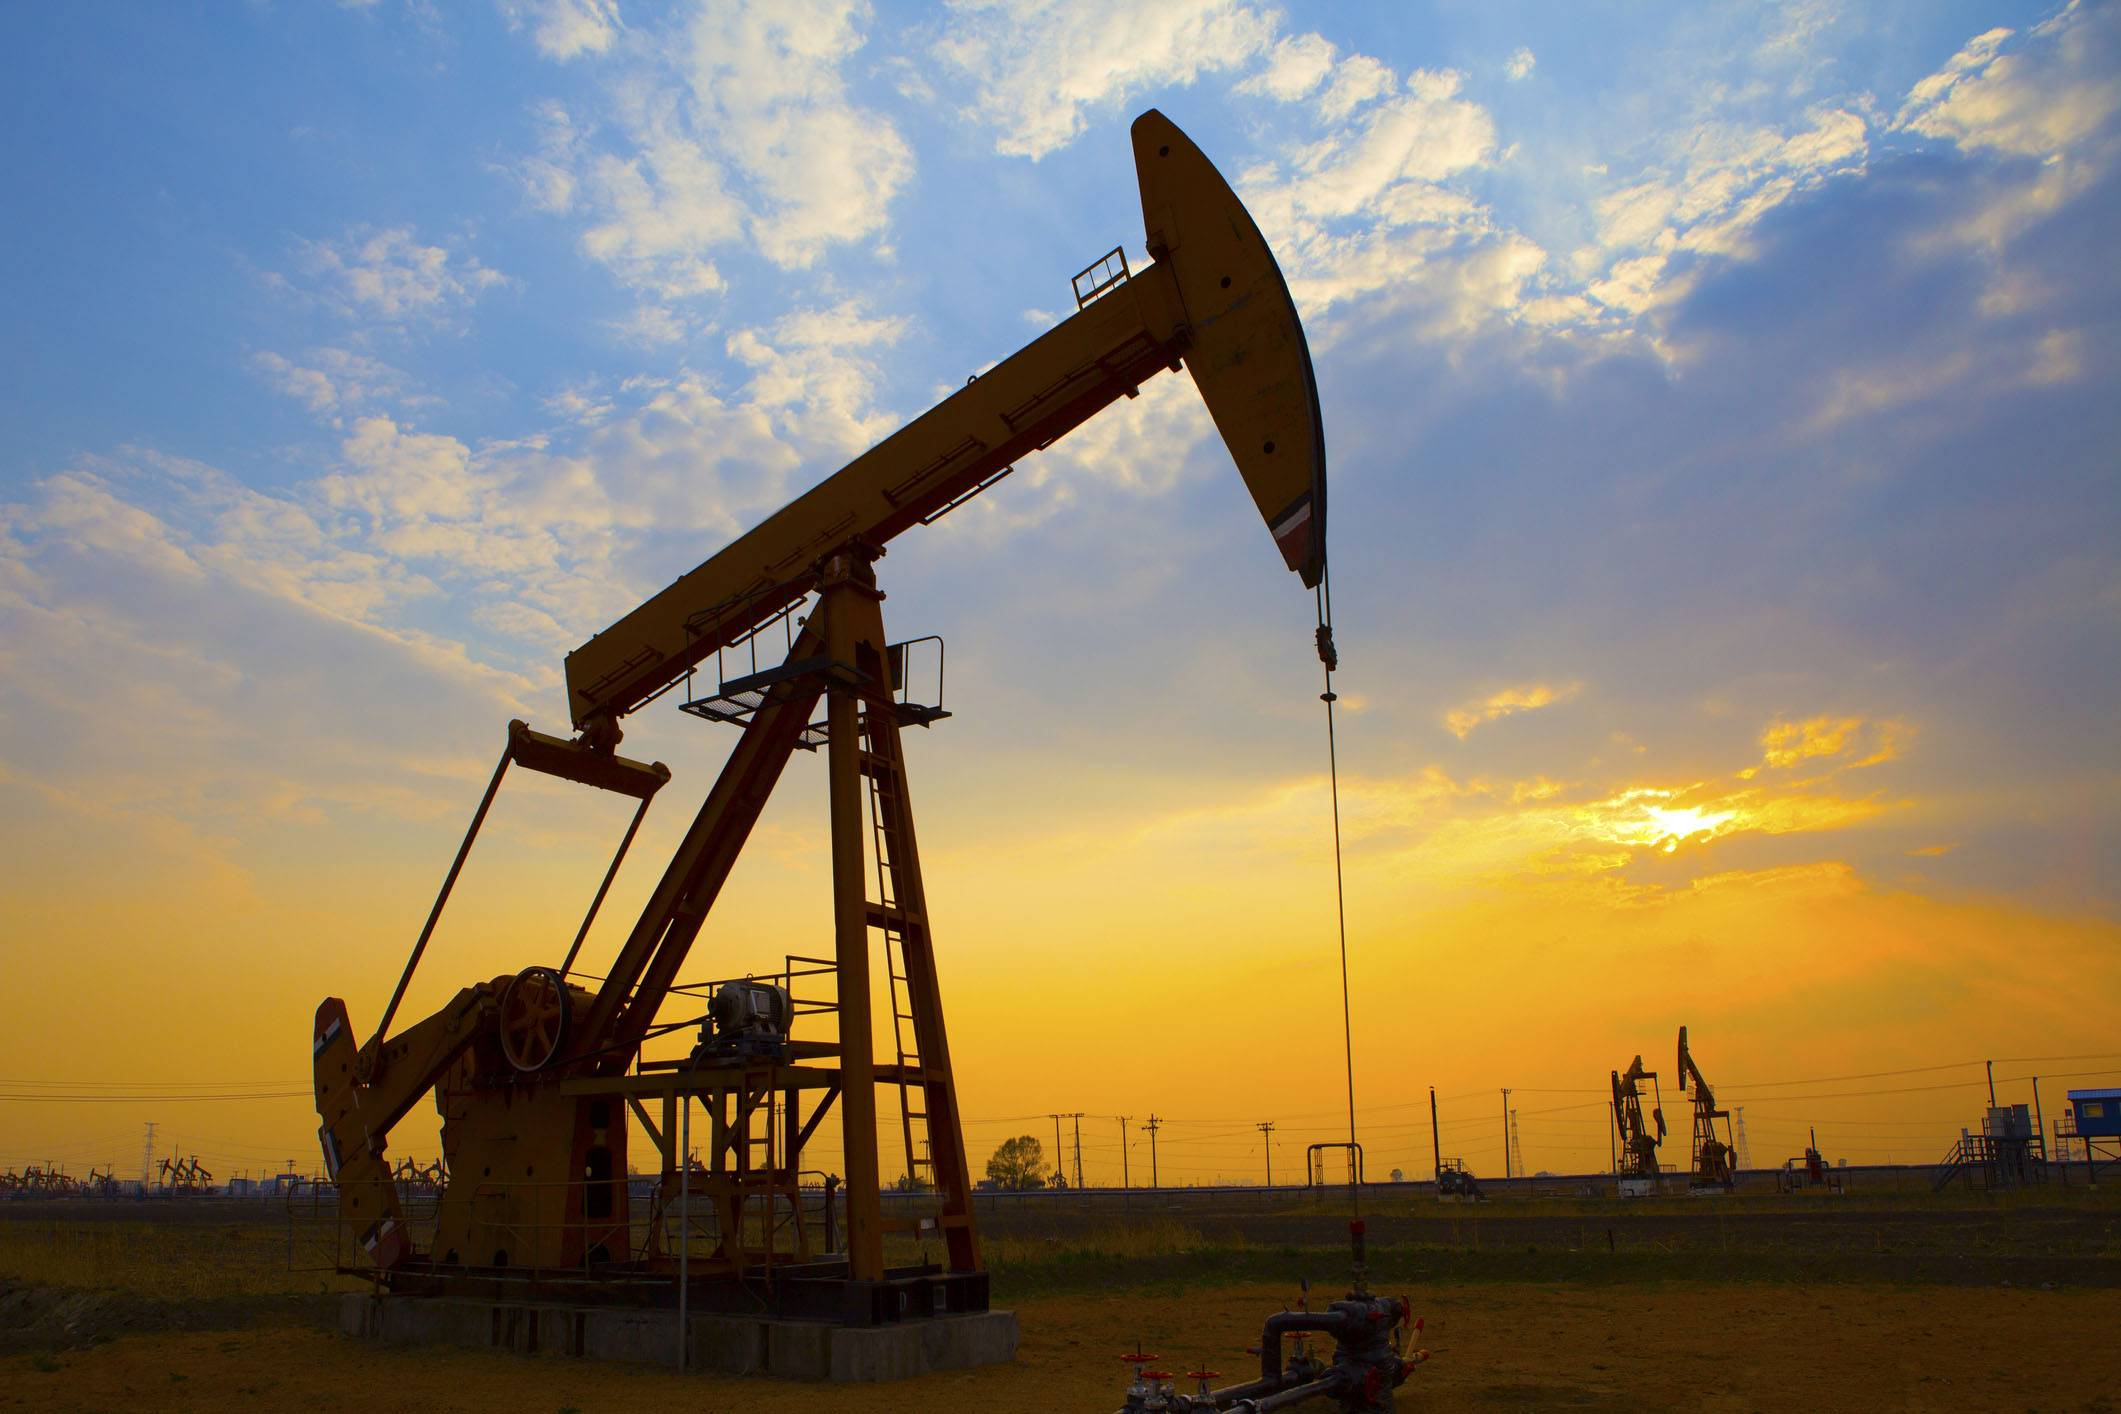 Oil drills pumping in the field